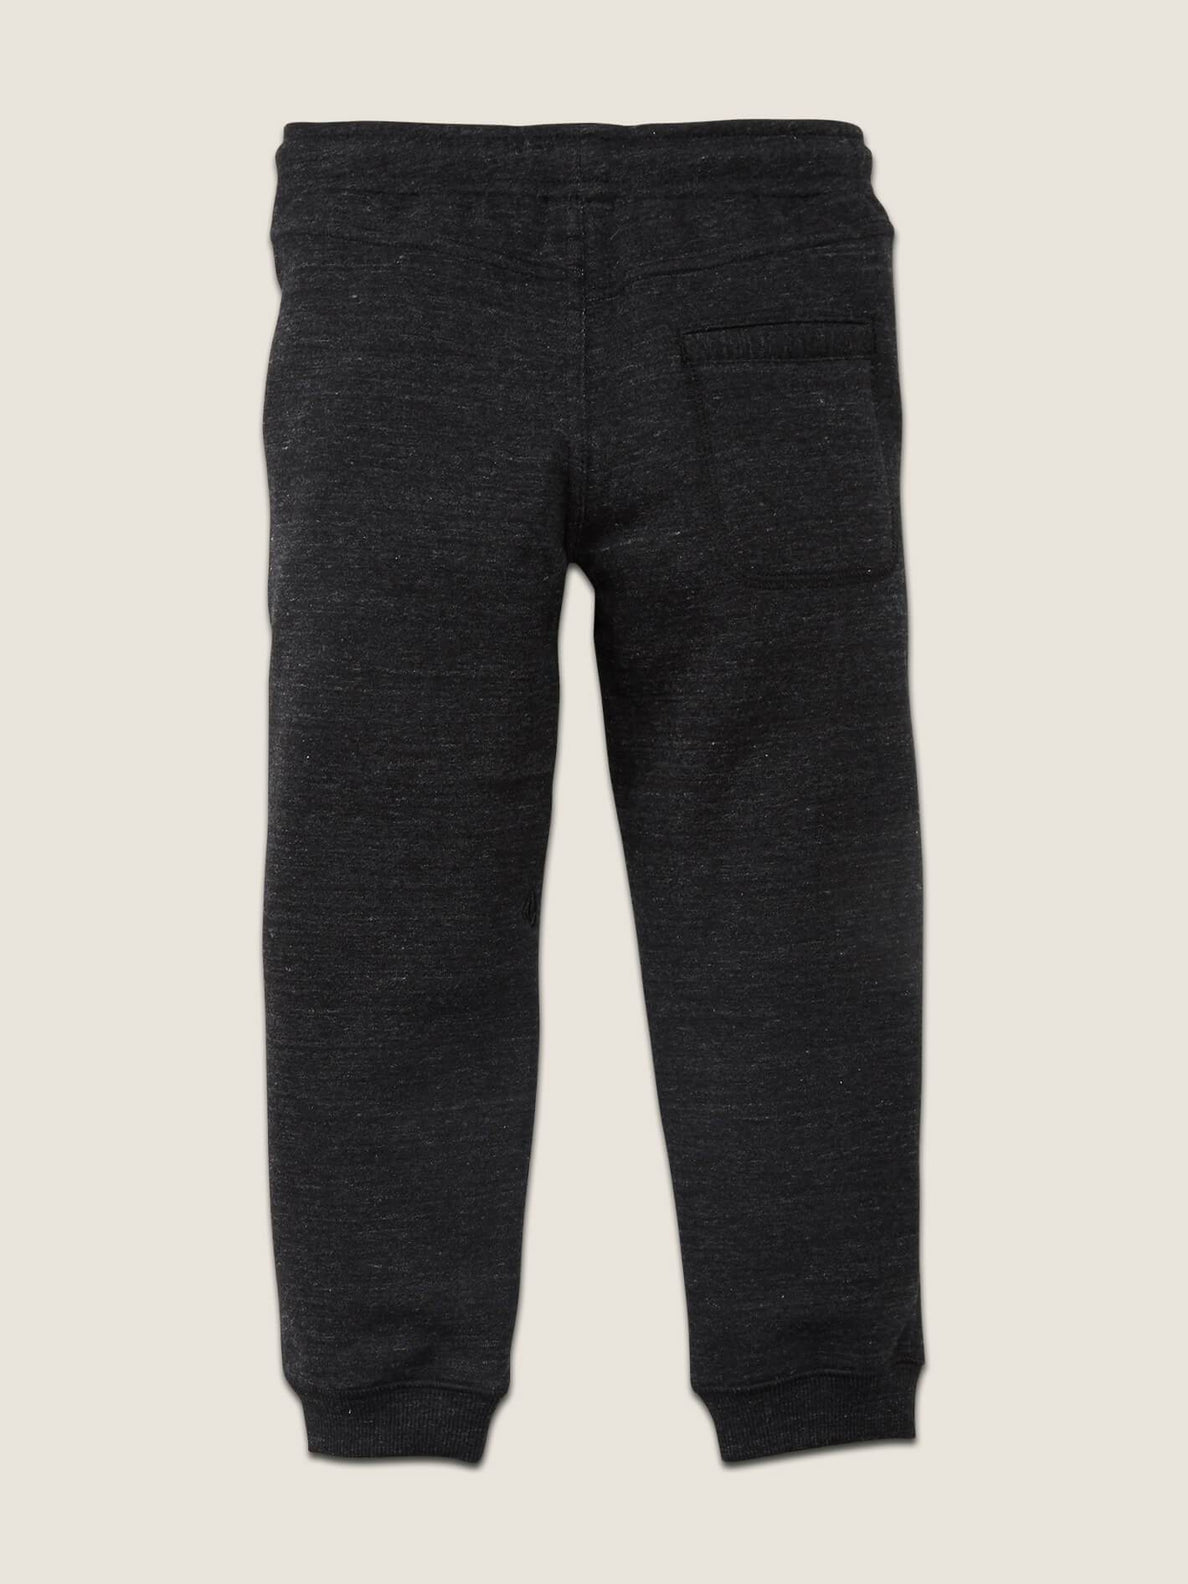 Little Boys Single Stone Fleece Pants In Sulfur Black, Back View